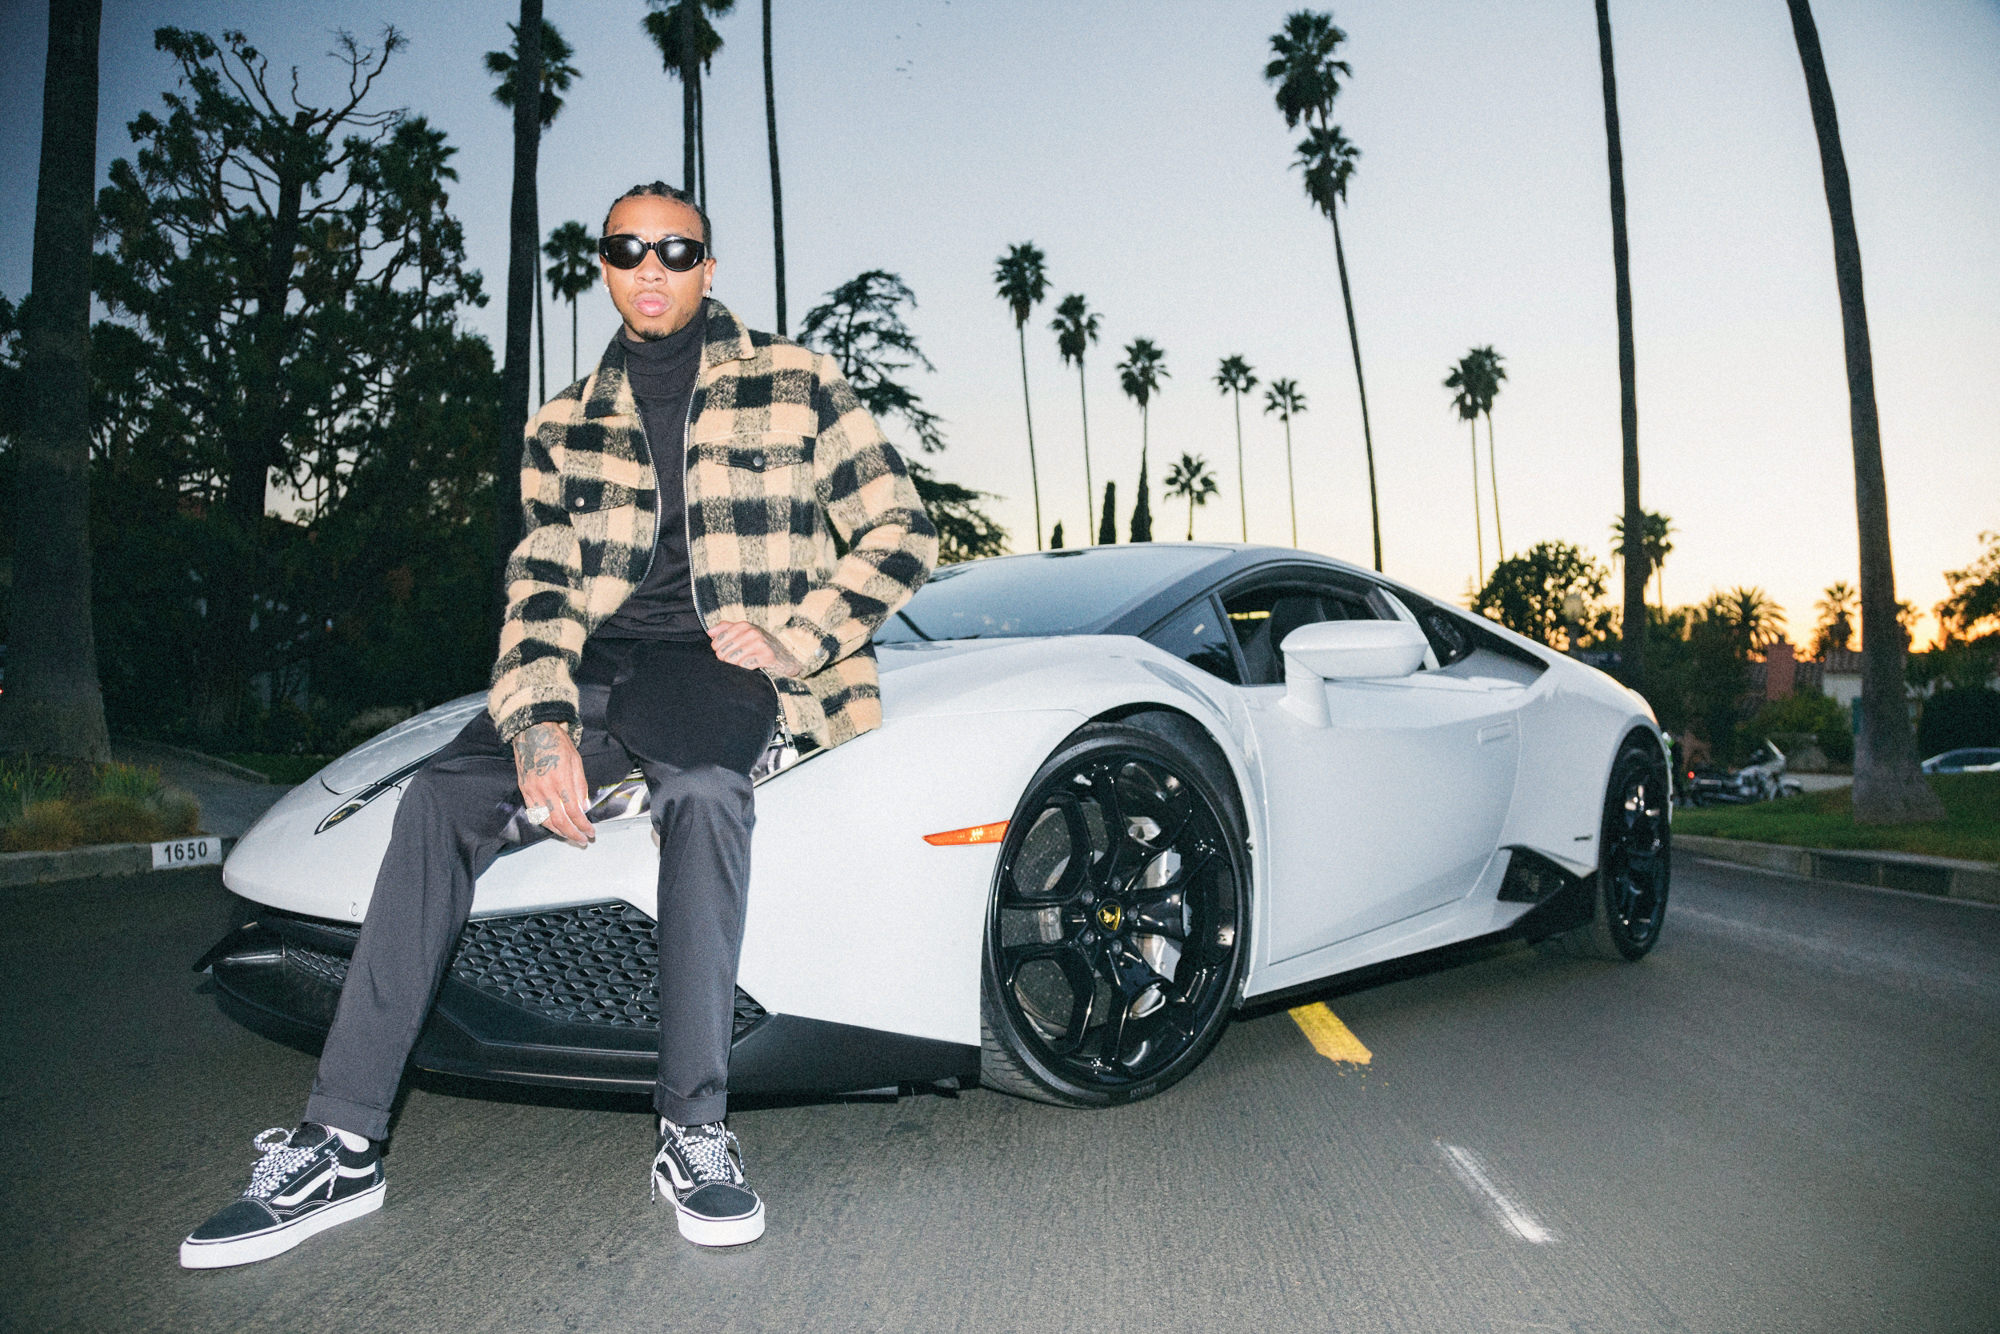 tyga_shot_by_photographer_adam_rindy_-26.jpg